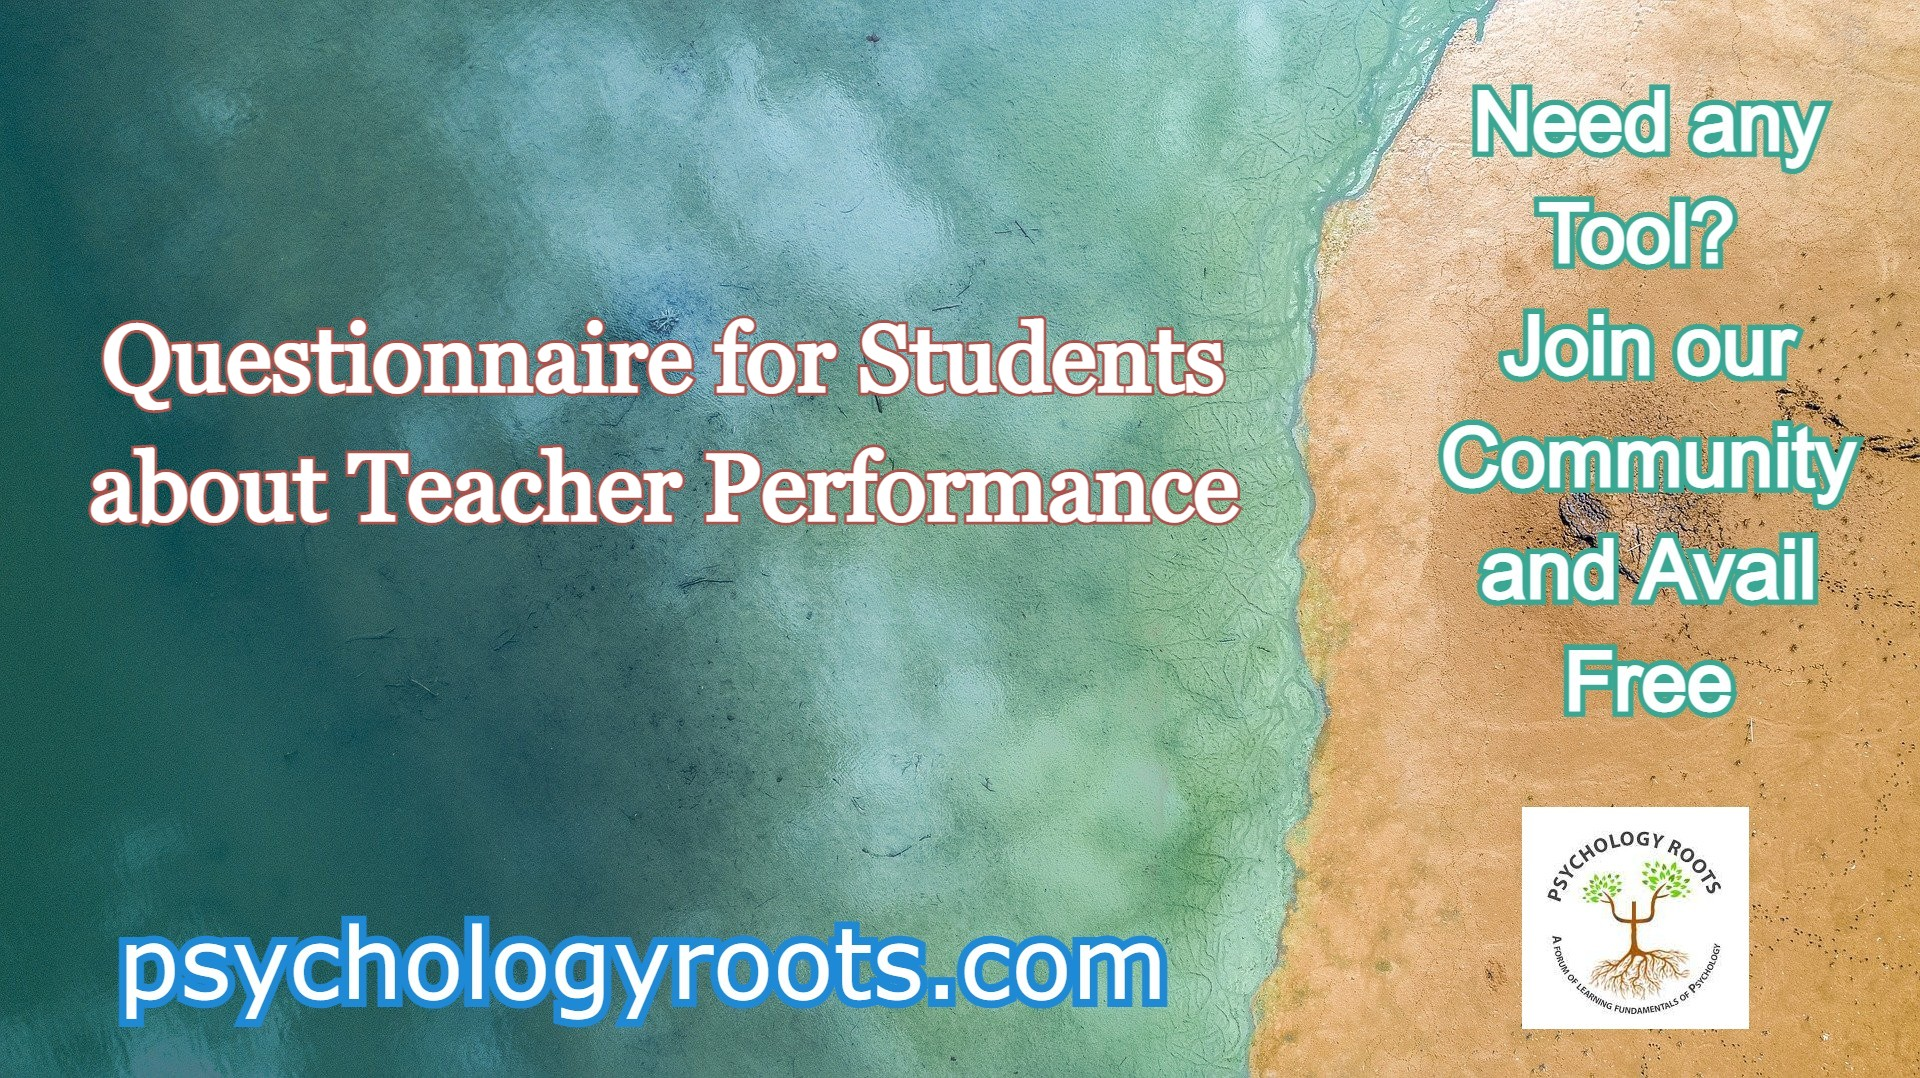 Questionnaire for Students about Teacher Performance